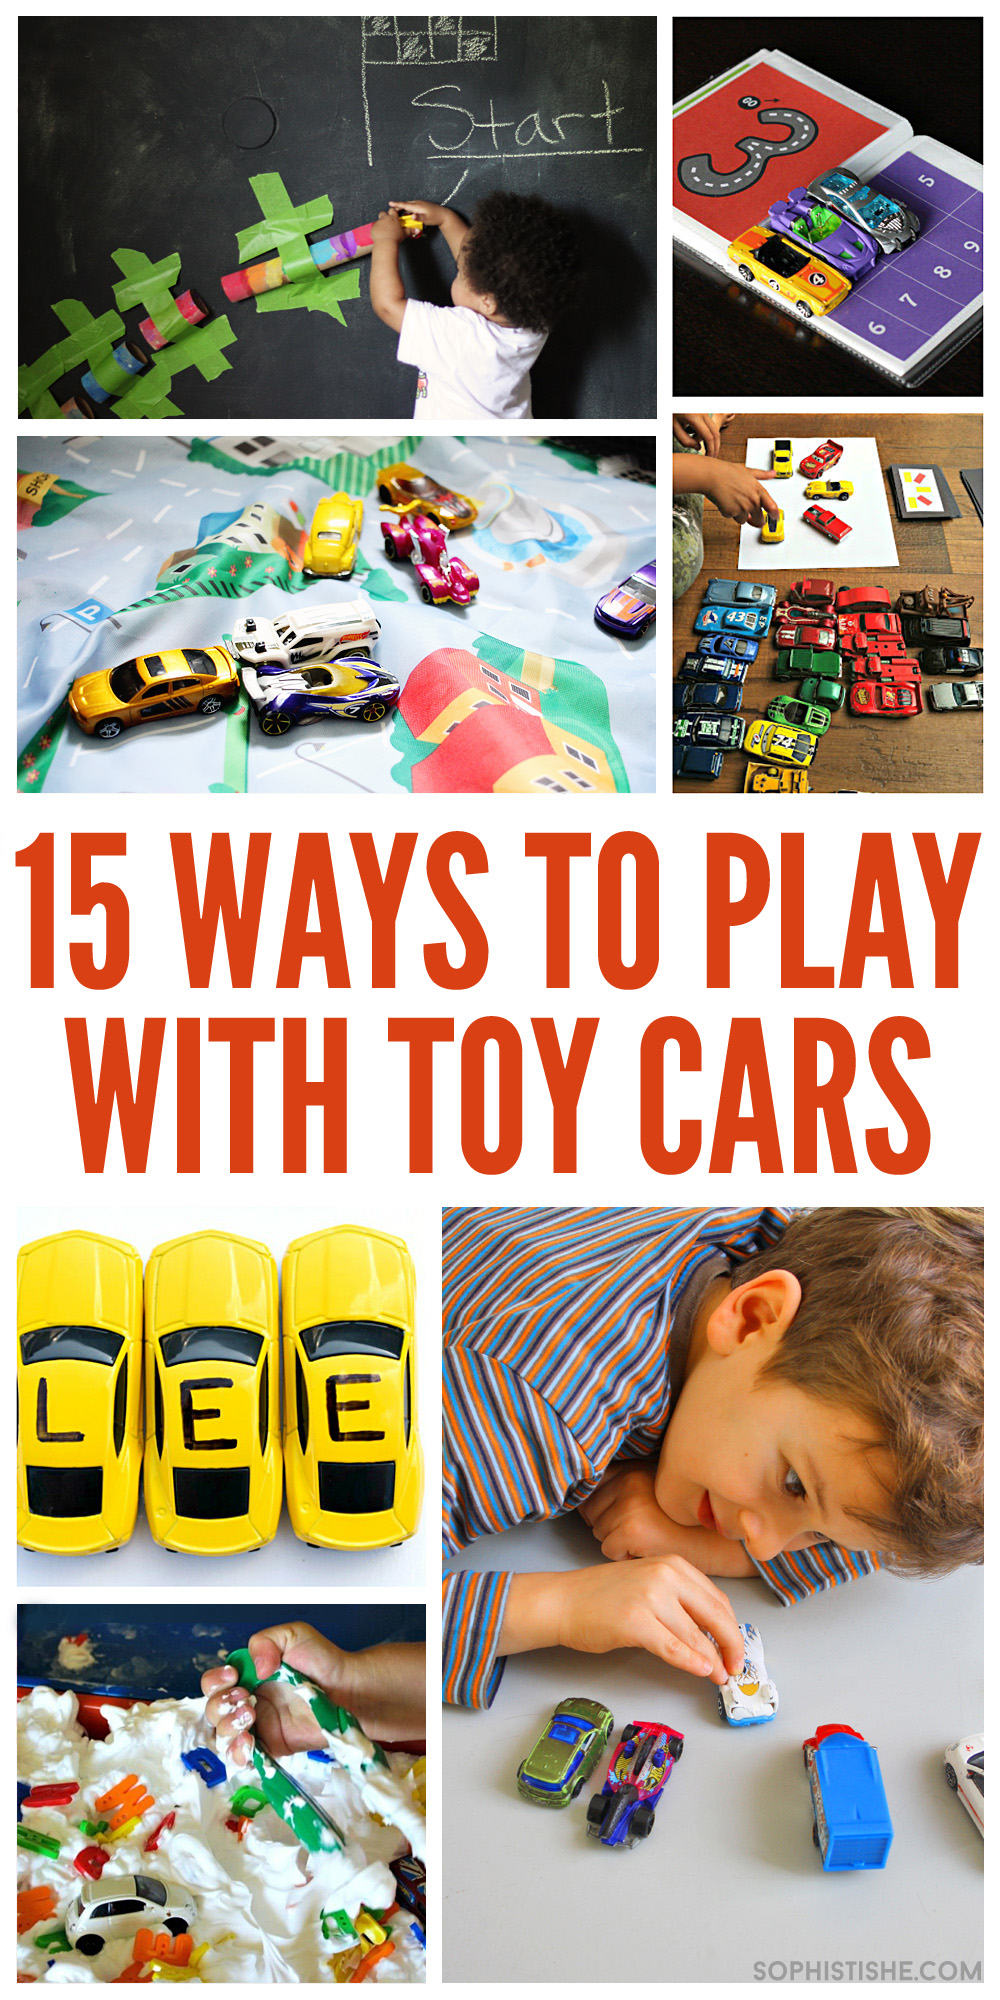 15 Ways To Play With Toy Cars